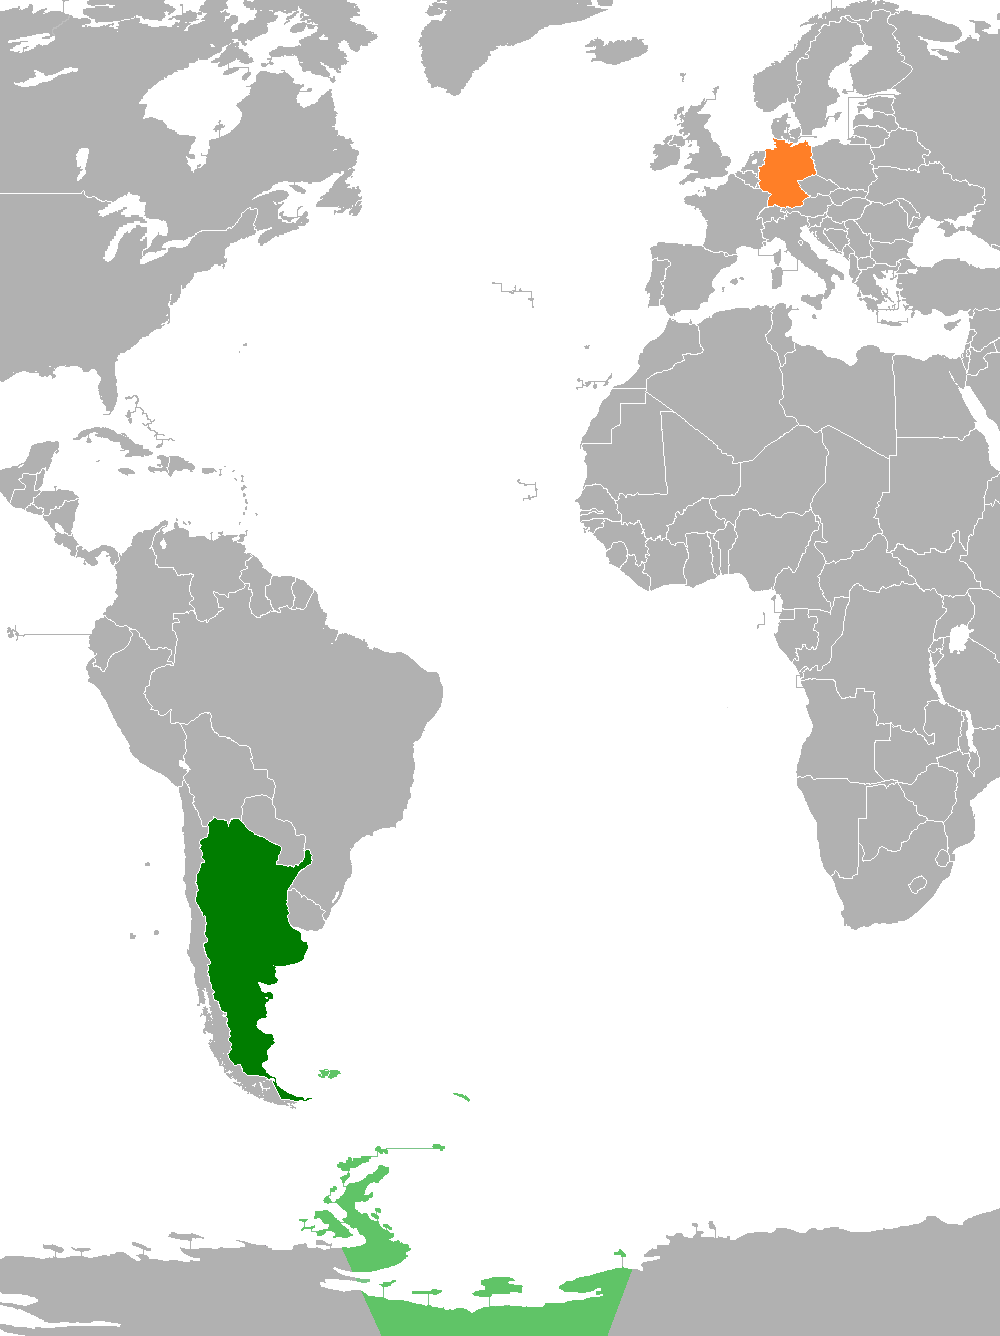 ArgentinaGermany Relations Wikipedia - Argentina map world